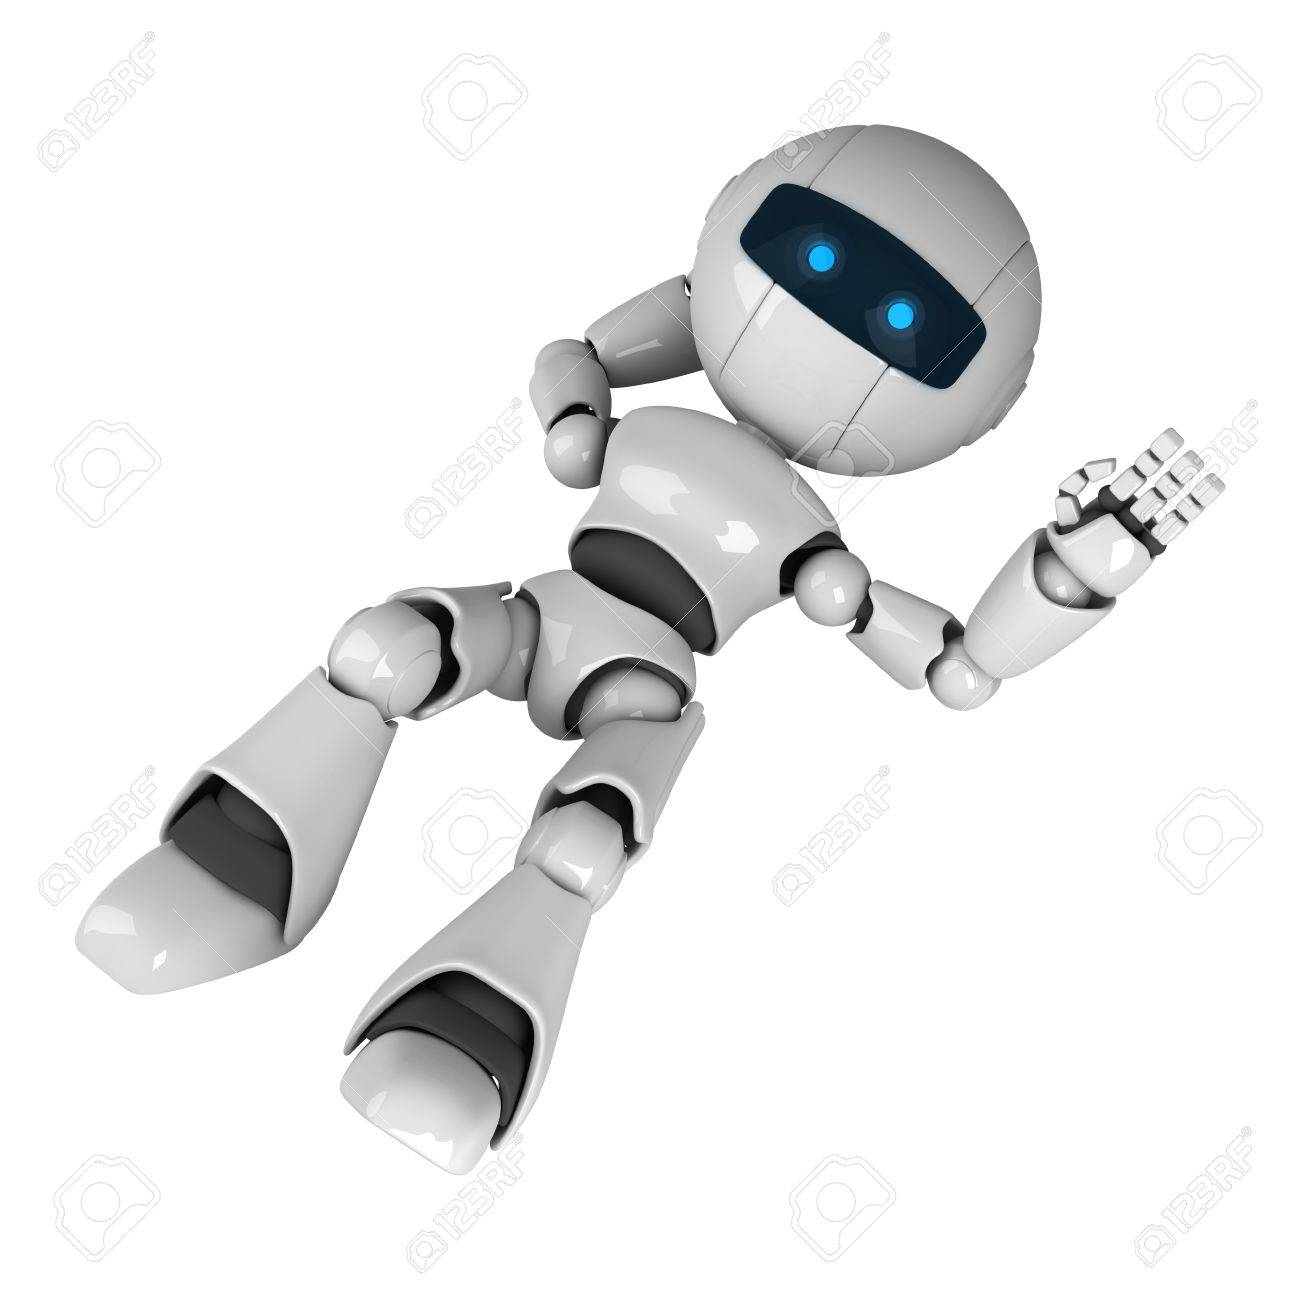 Funny white robot lie and show hello Stock Photo - 10042446